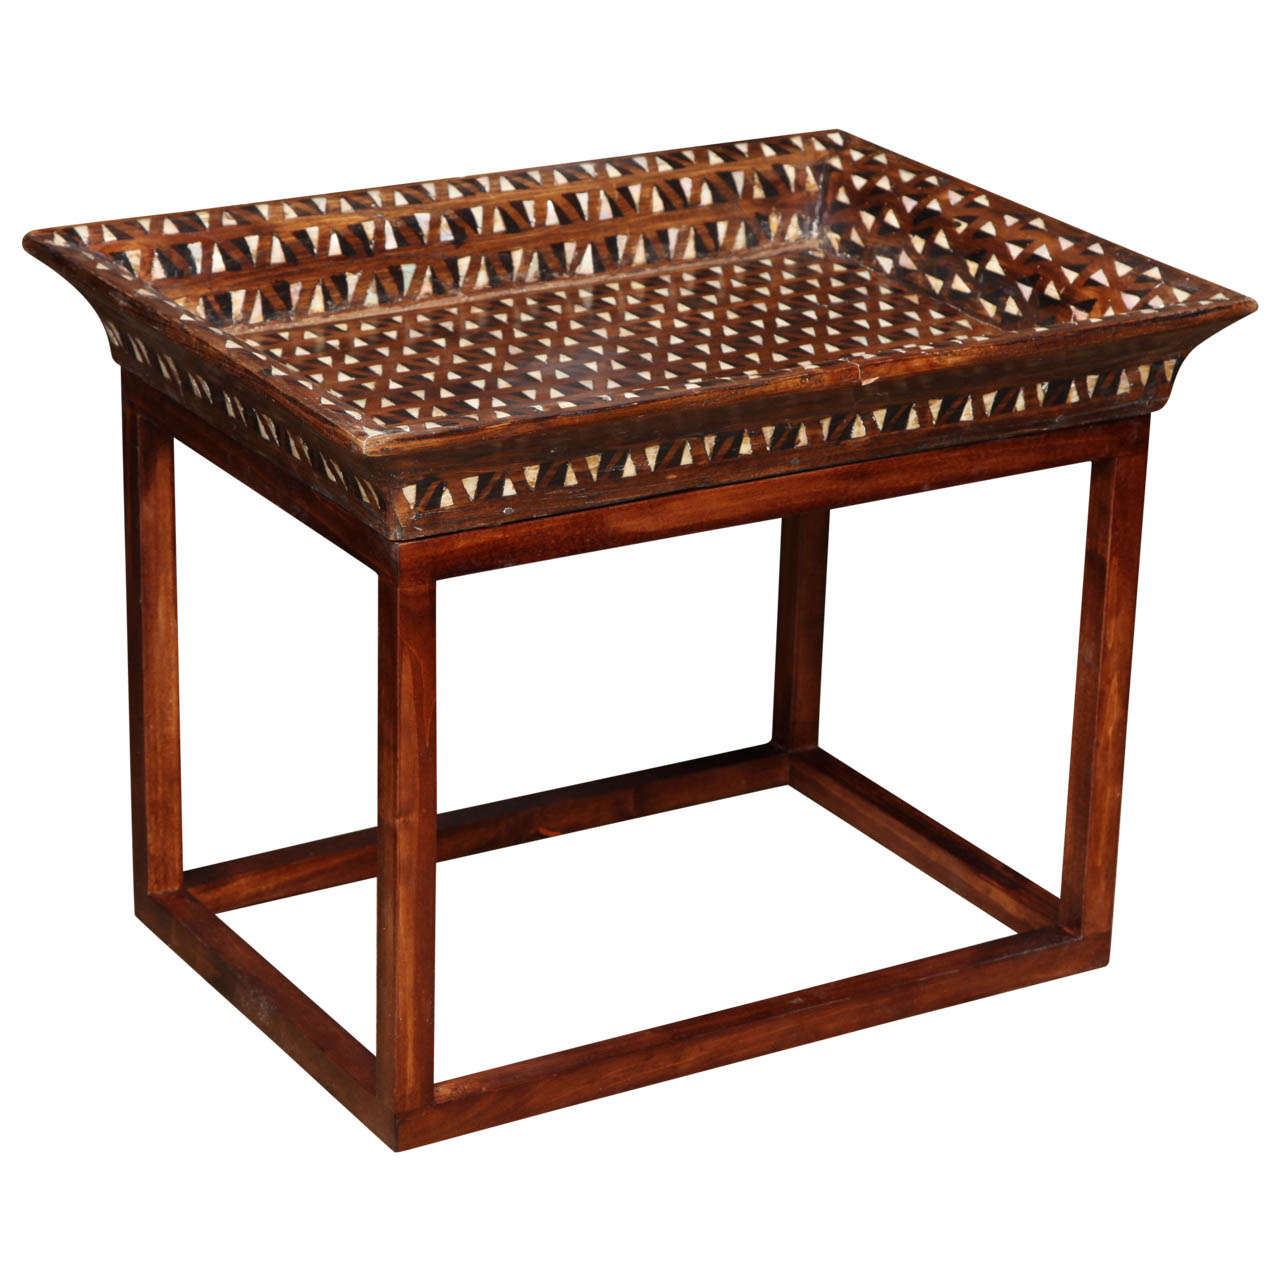 Inlaid Tray Top End Table For Sale At 1stdibs. Desk Set Movie Cast. Table Top Mill. Pier One Sofa Table. Deskes. Cheap Bedside Tables. Desk Chair Staples. Wine Barrel Tables. Butcher Block Desk Top